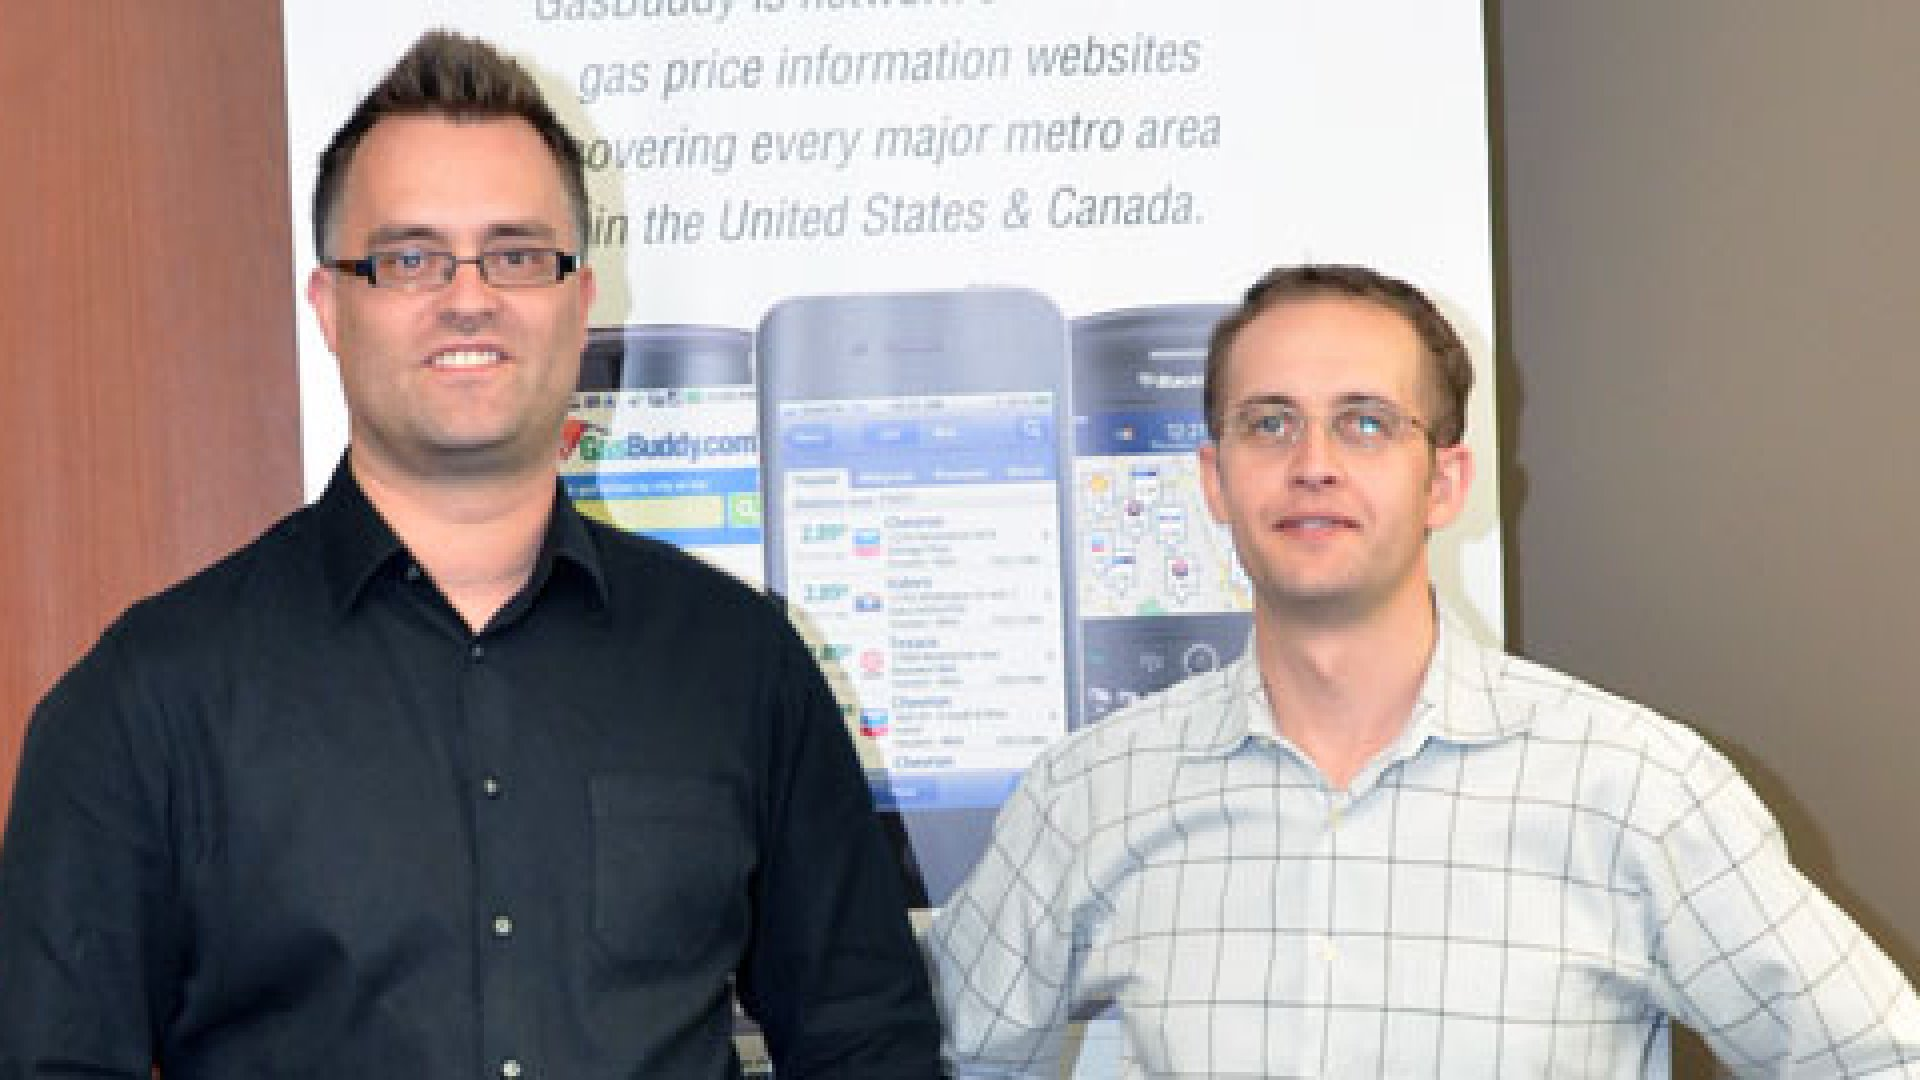 In 2009, Jason Toews and Dustin Coupal realized that their site's limitations could be corrected with a series of mobile apps. So the company launched Android and iPhone apps later that year, and they were instantly popular.